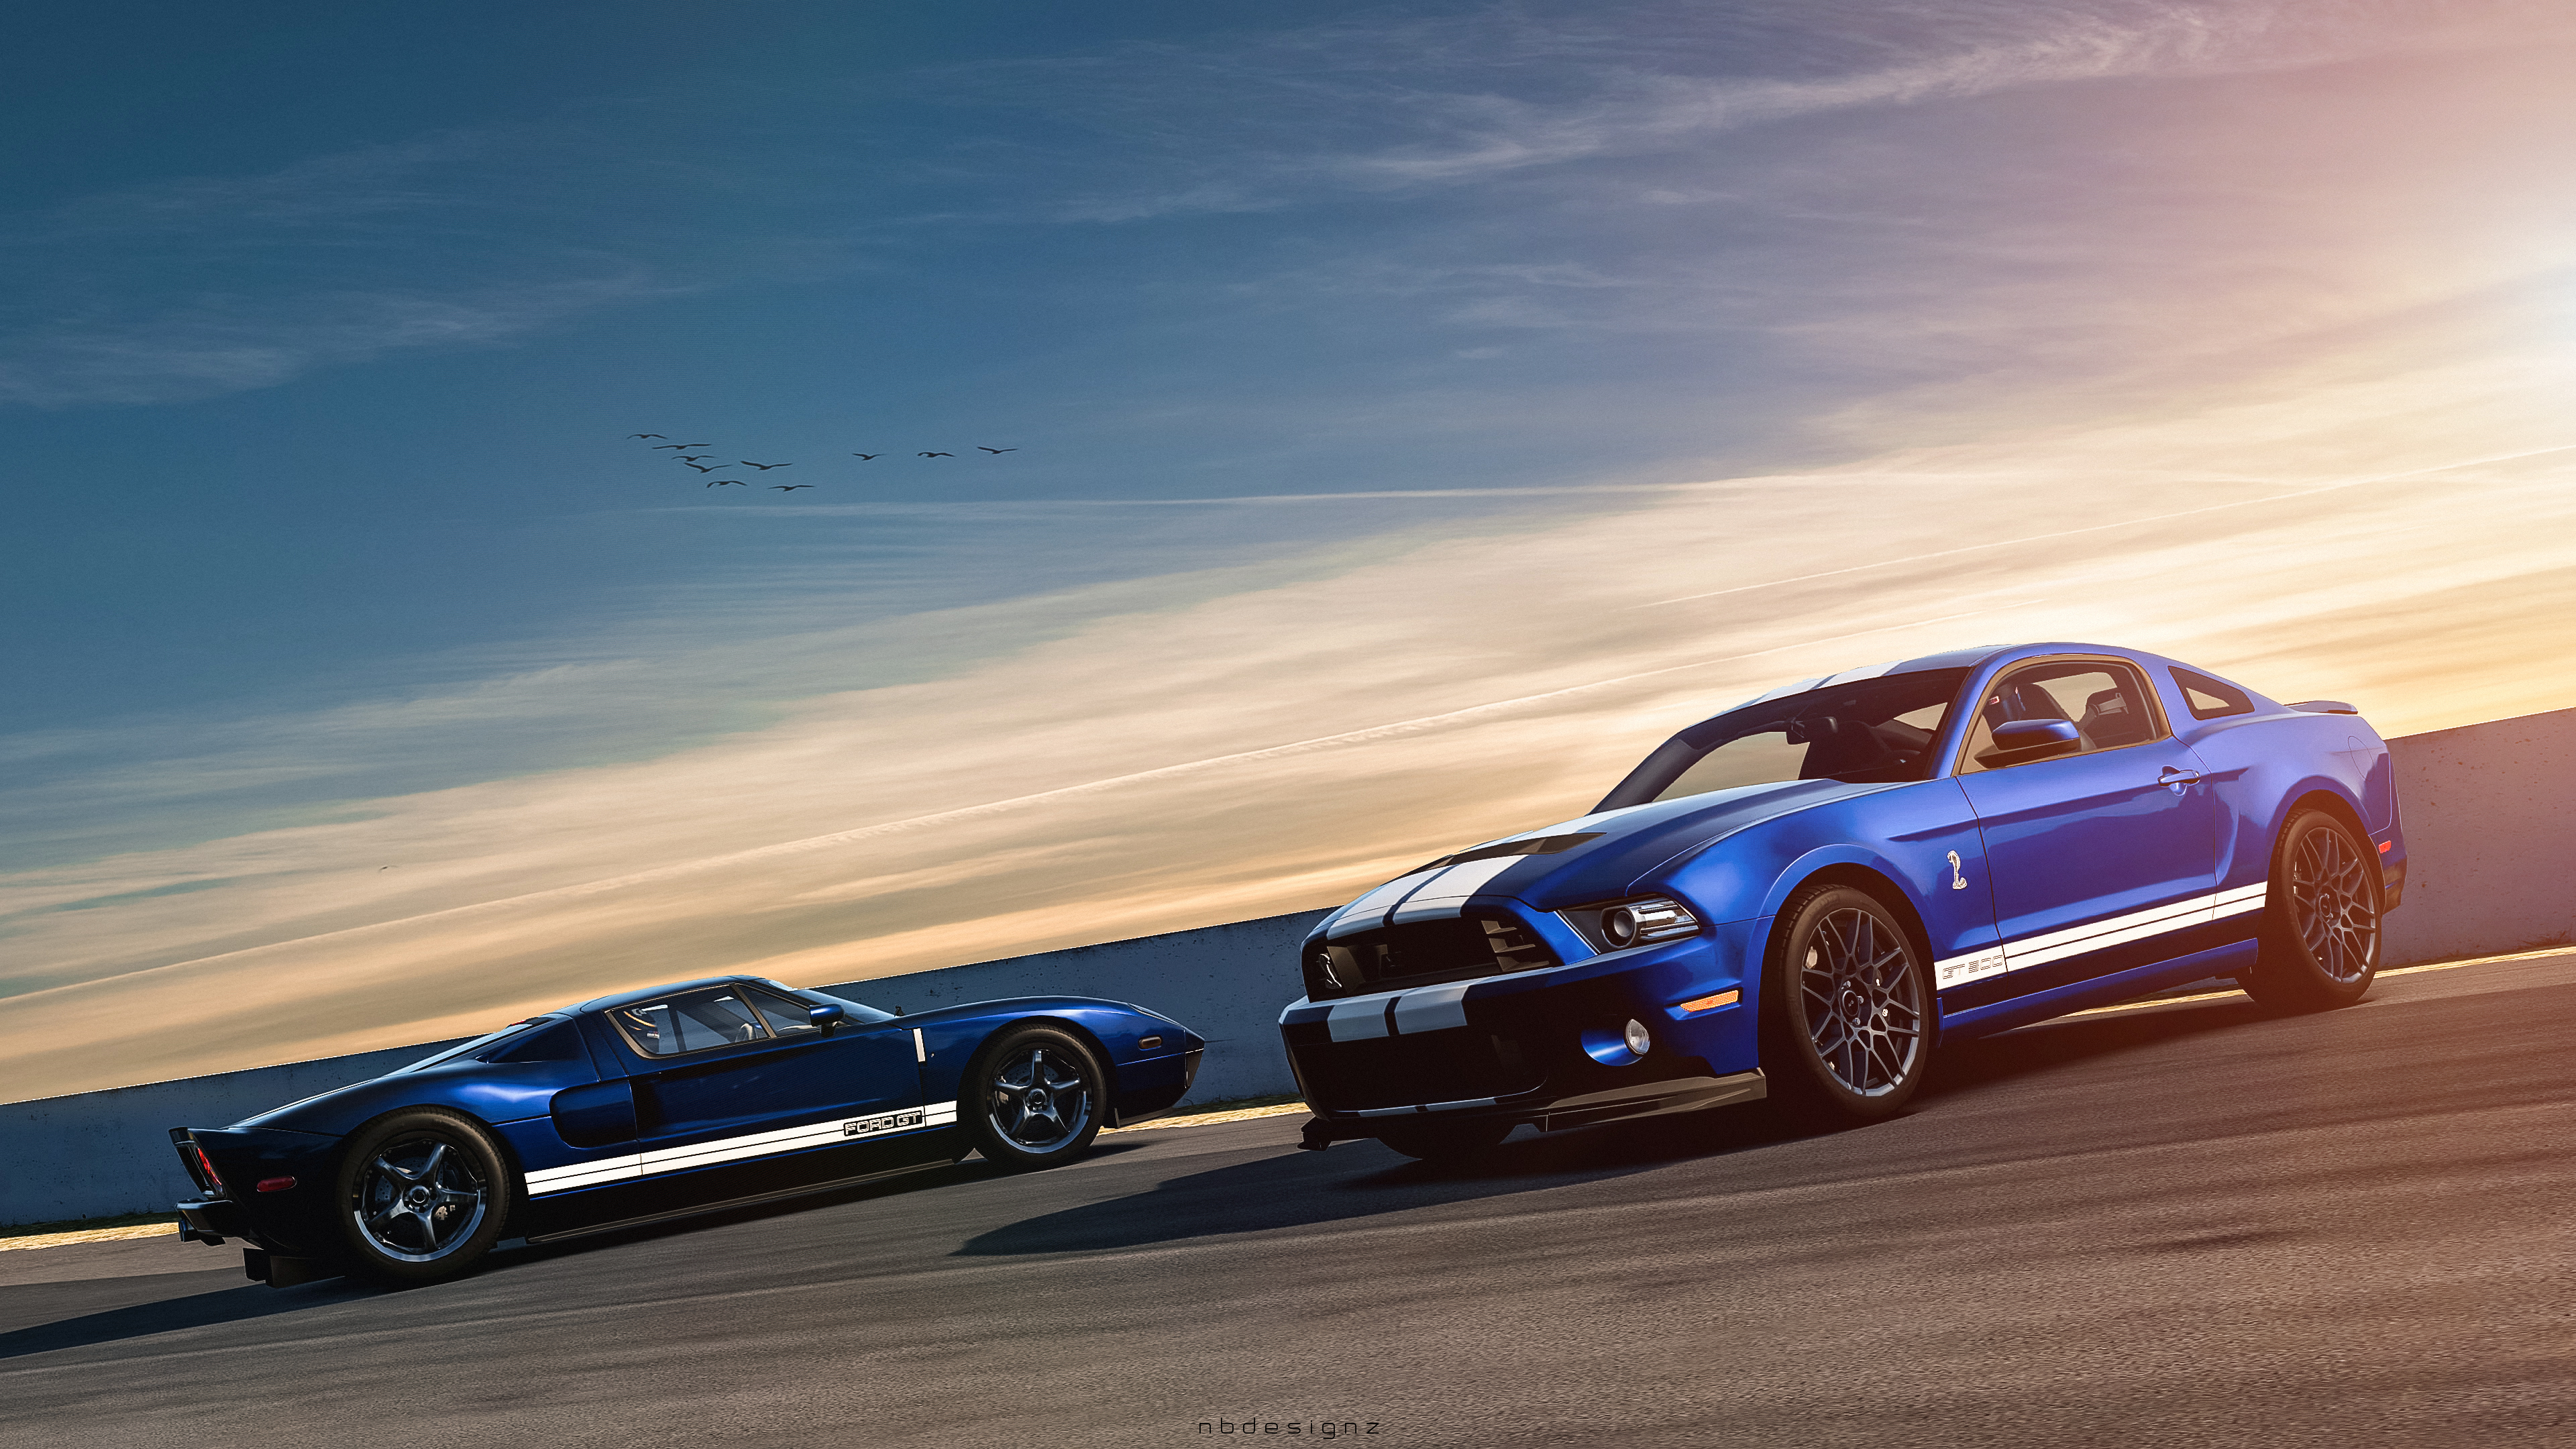 3840x2160 - Ford Mustang GT500 Wallpapers 28